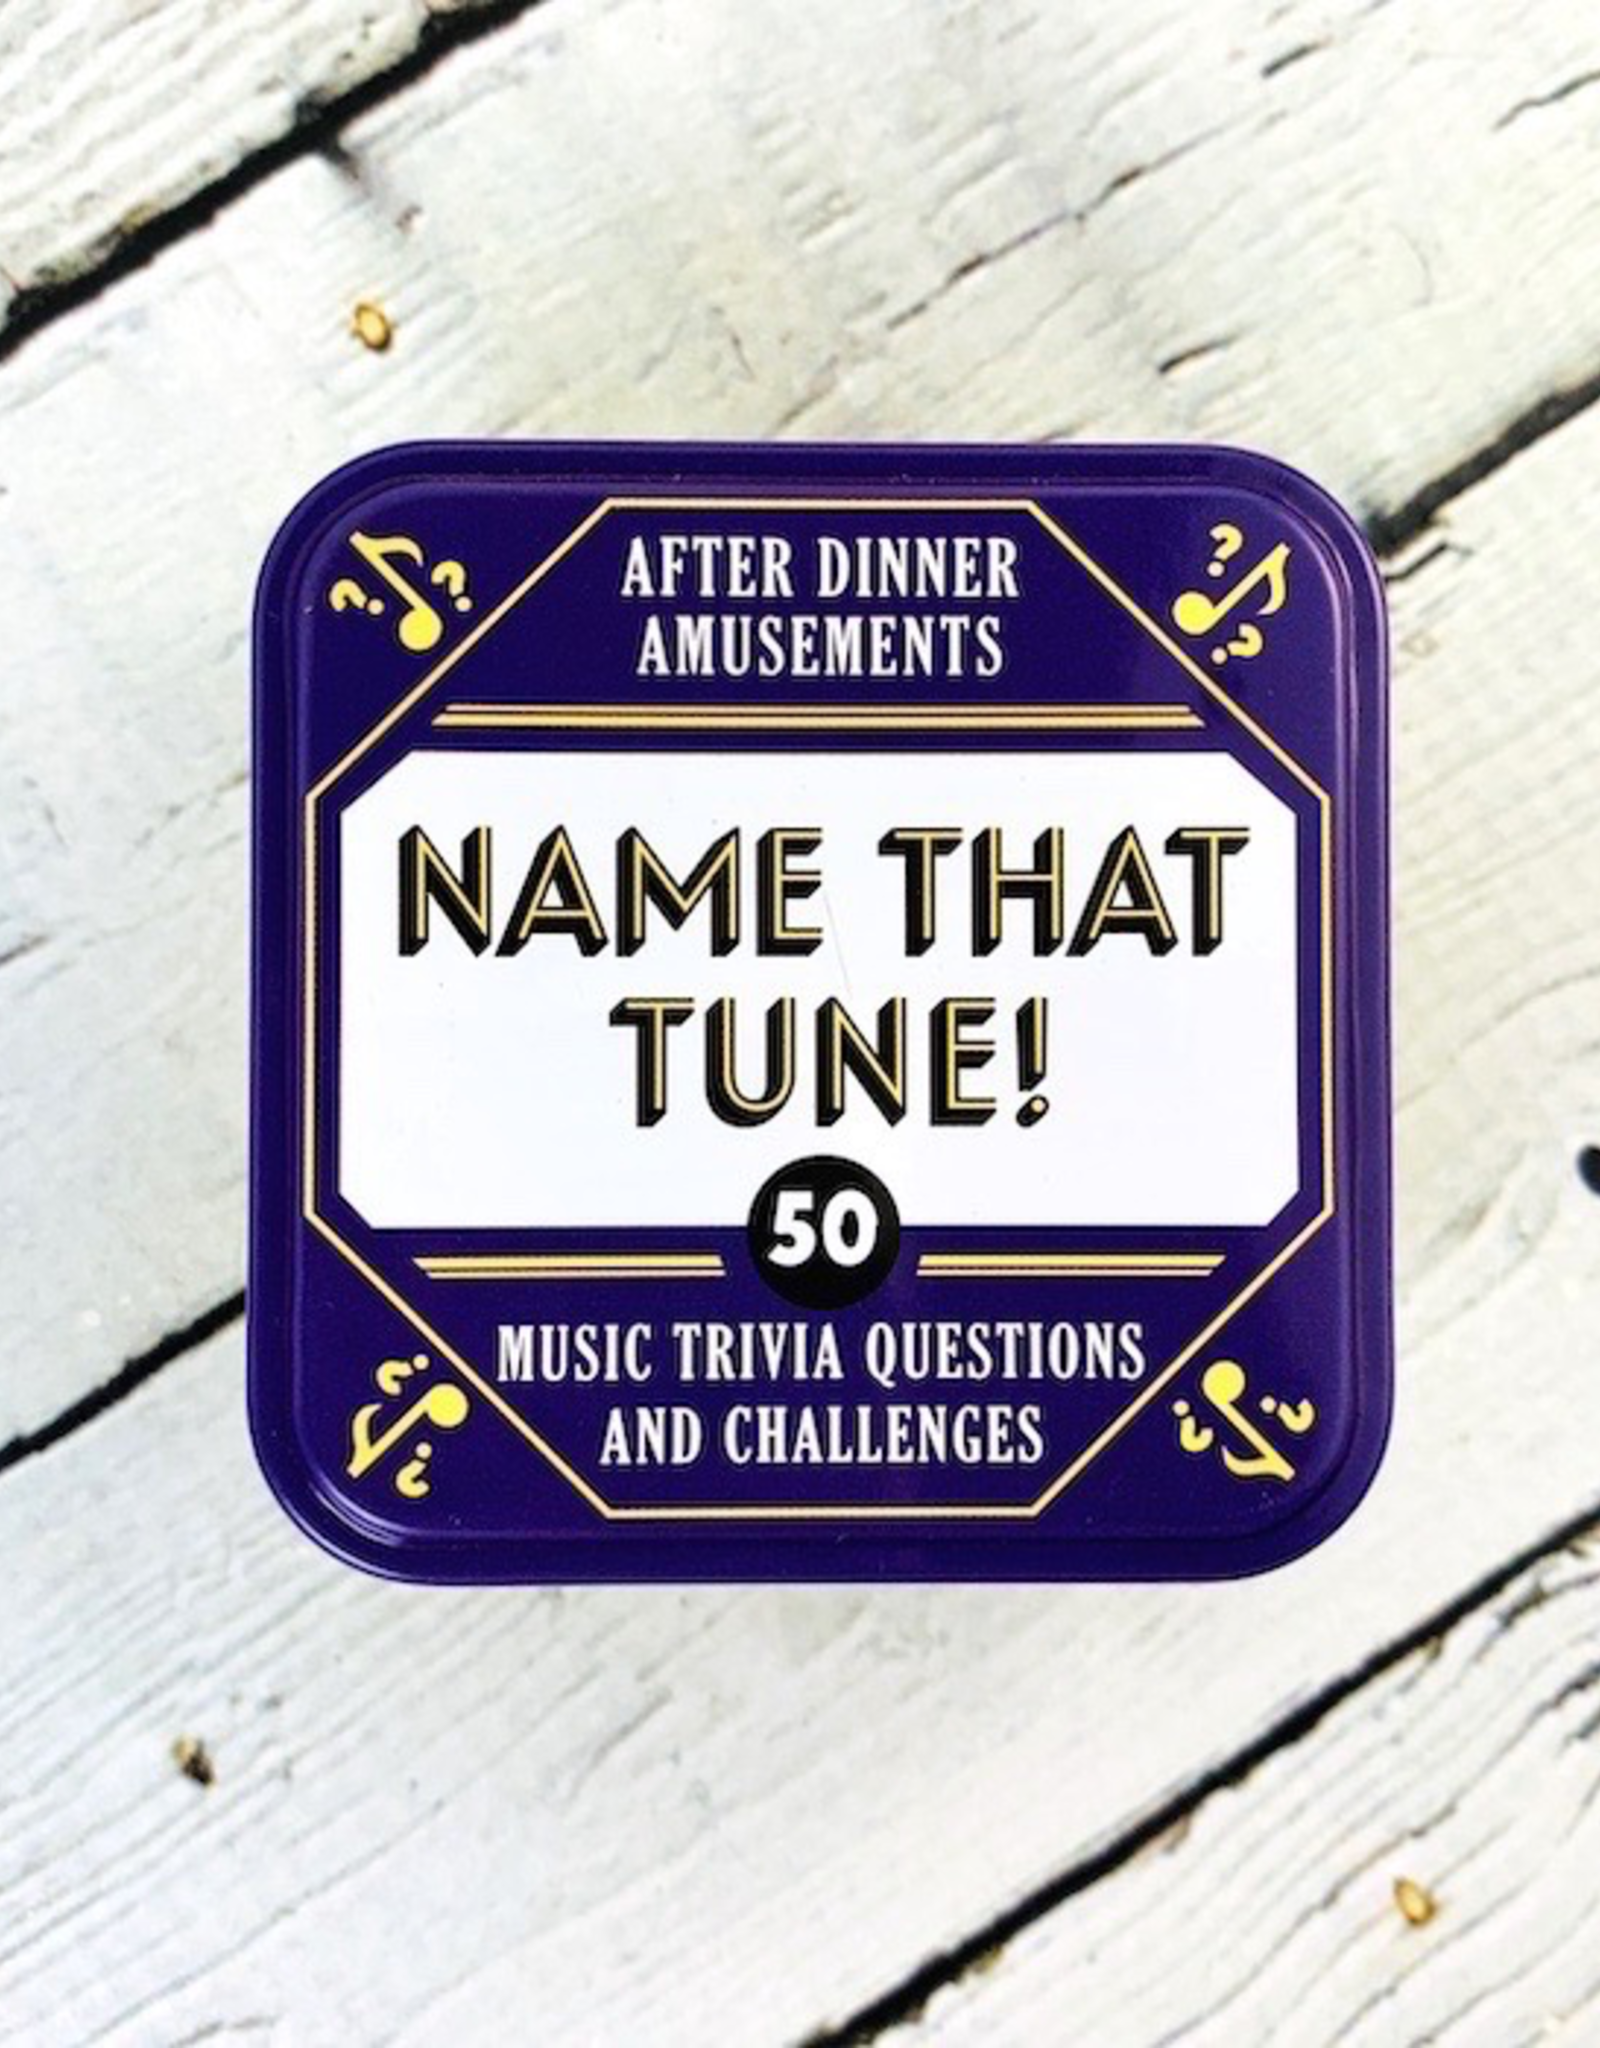 After Dinner Amusements: Name That Tune! 50 Music Trivia Questions and Challenges